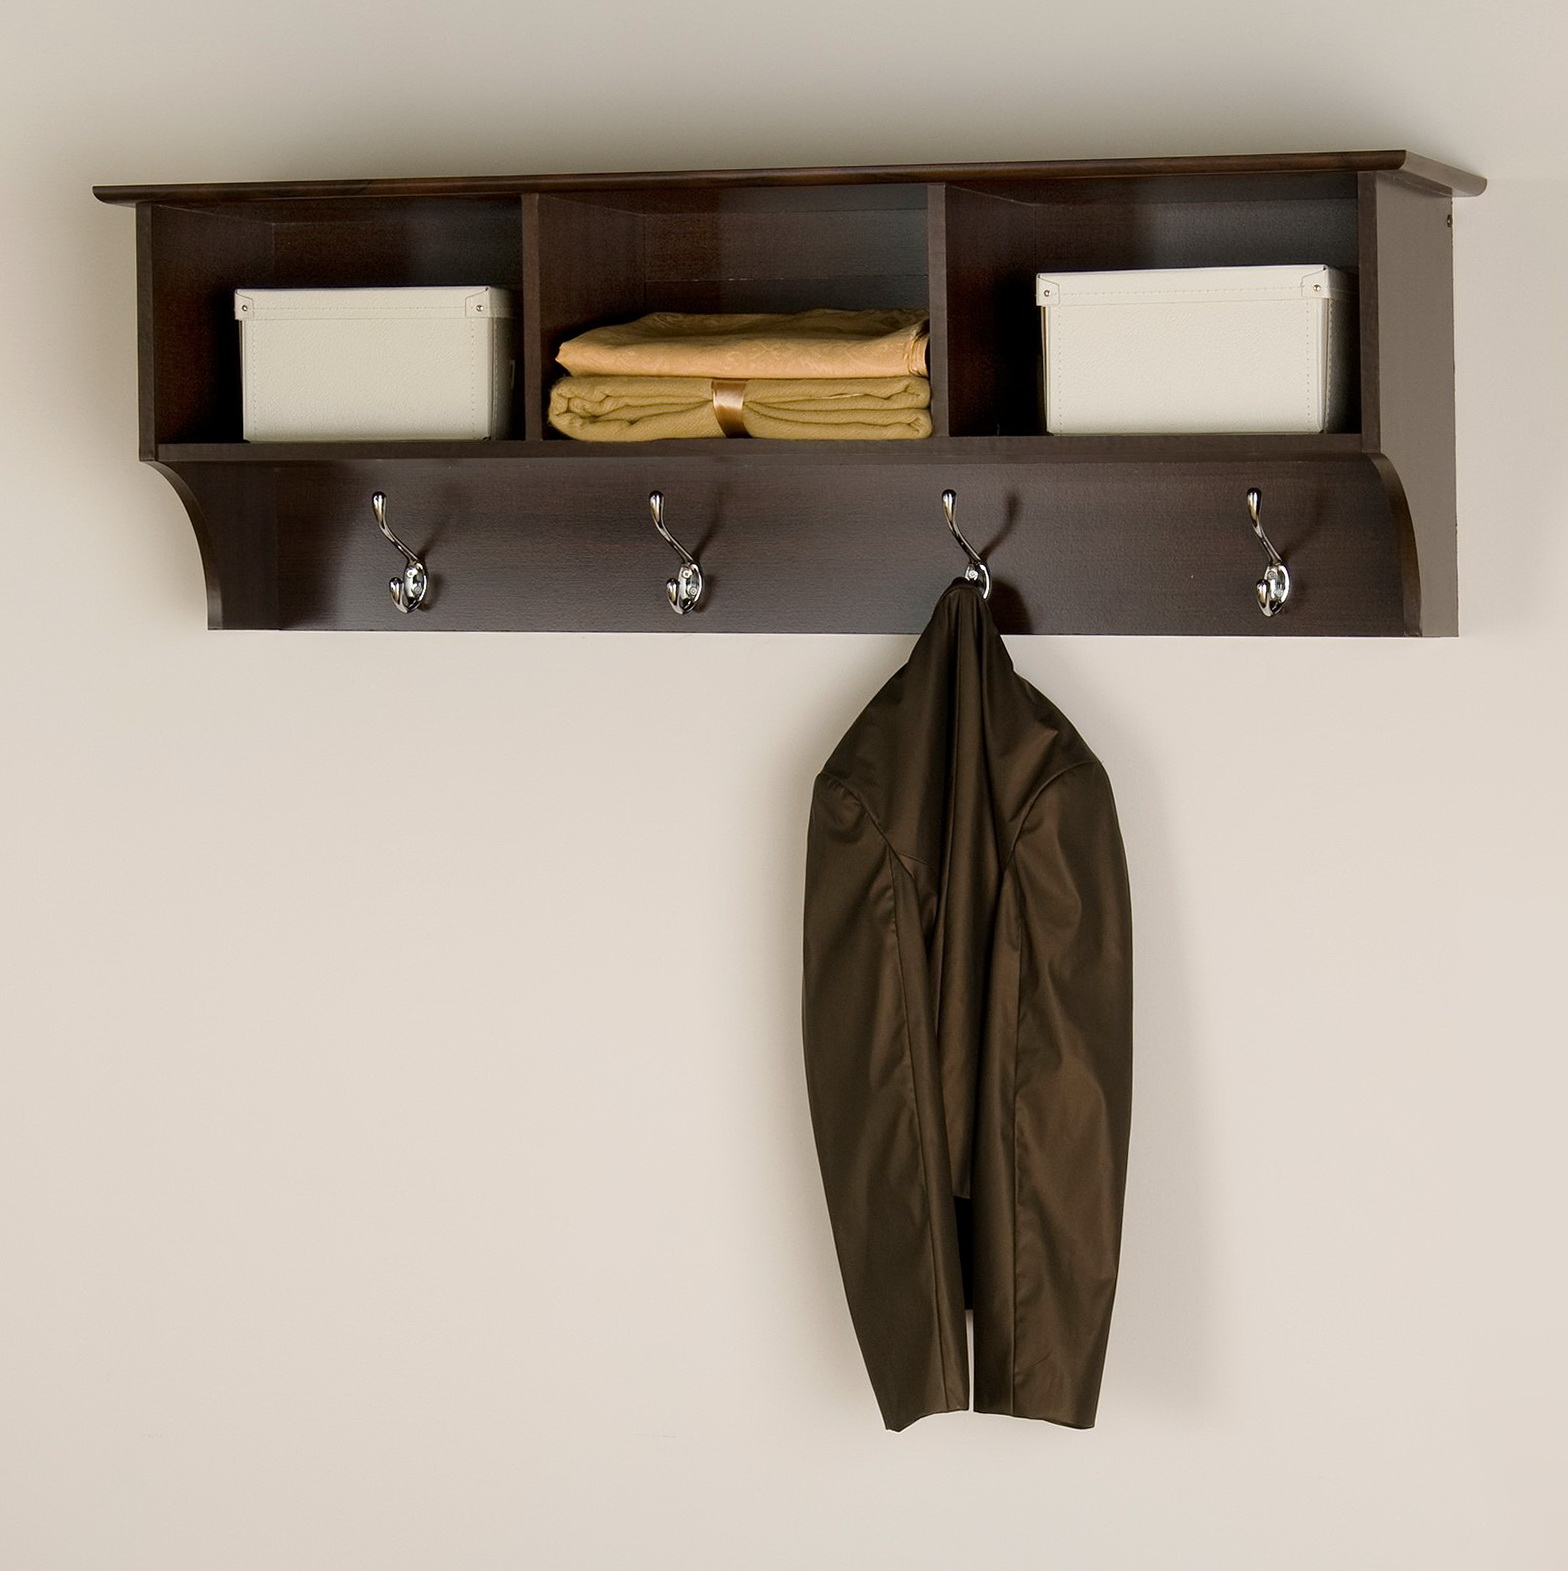 How To Make A Wall Coat Rack With Shelf